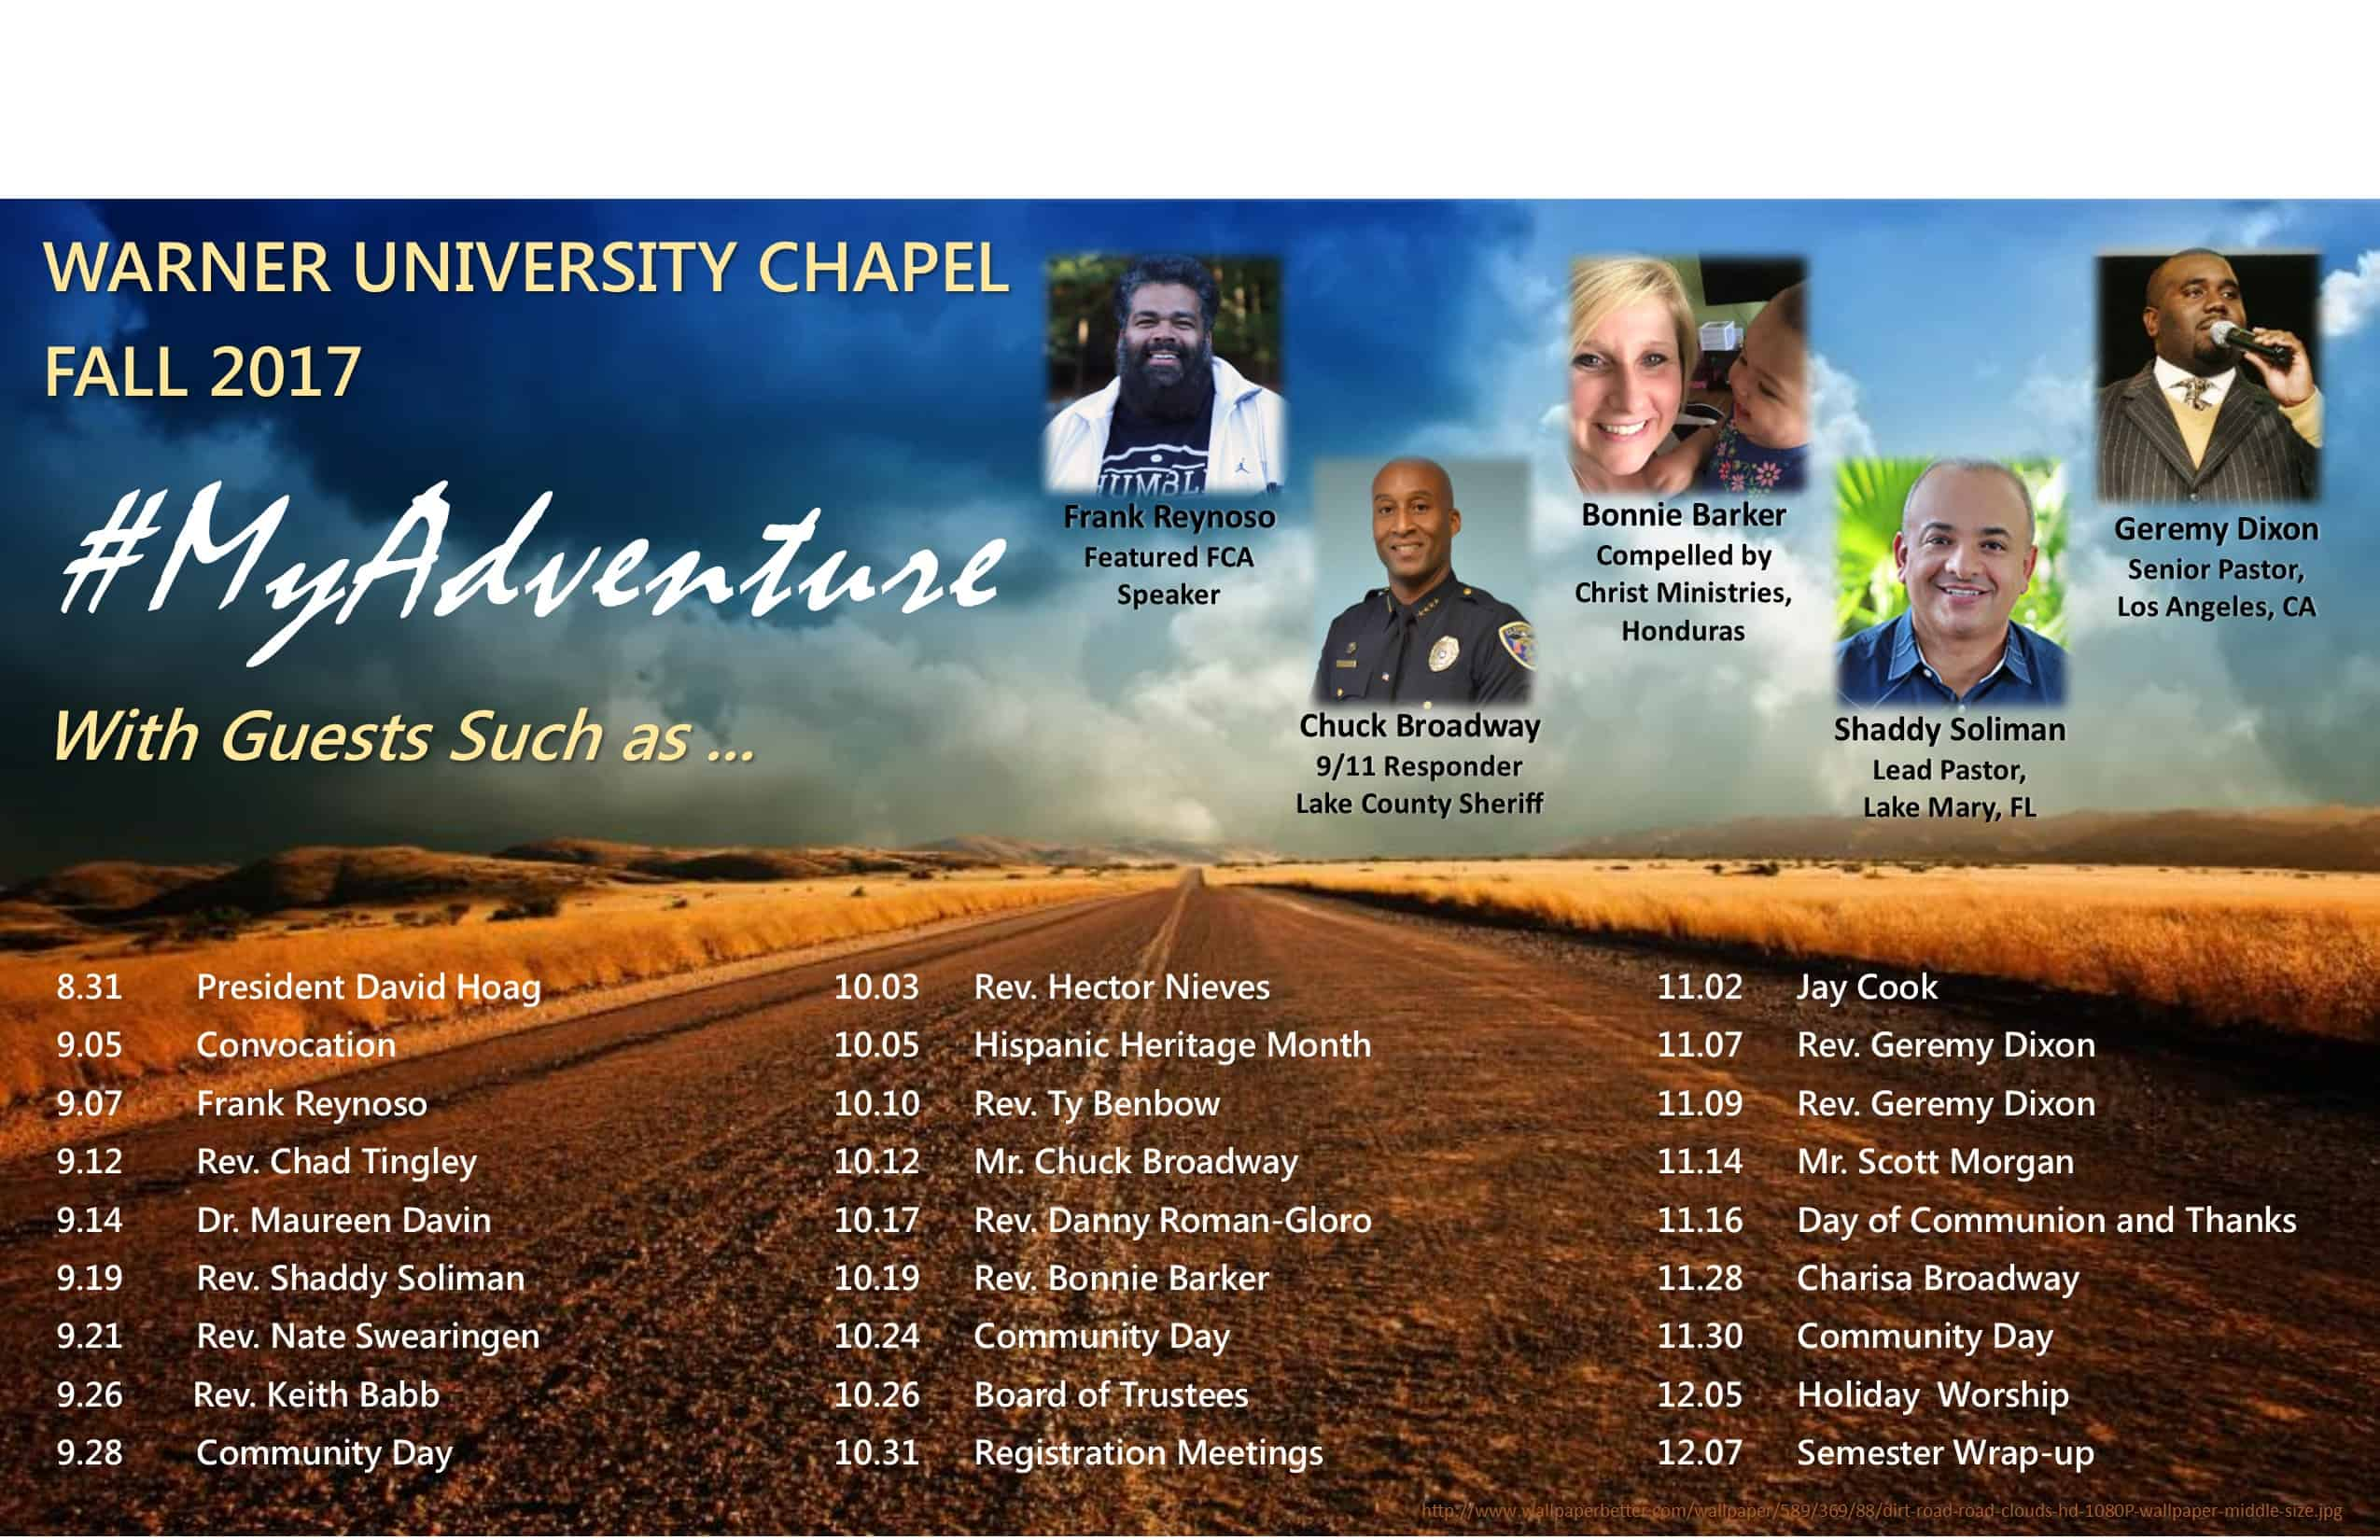 Remaining Chapel Schedule for Fall 2017